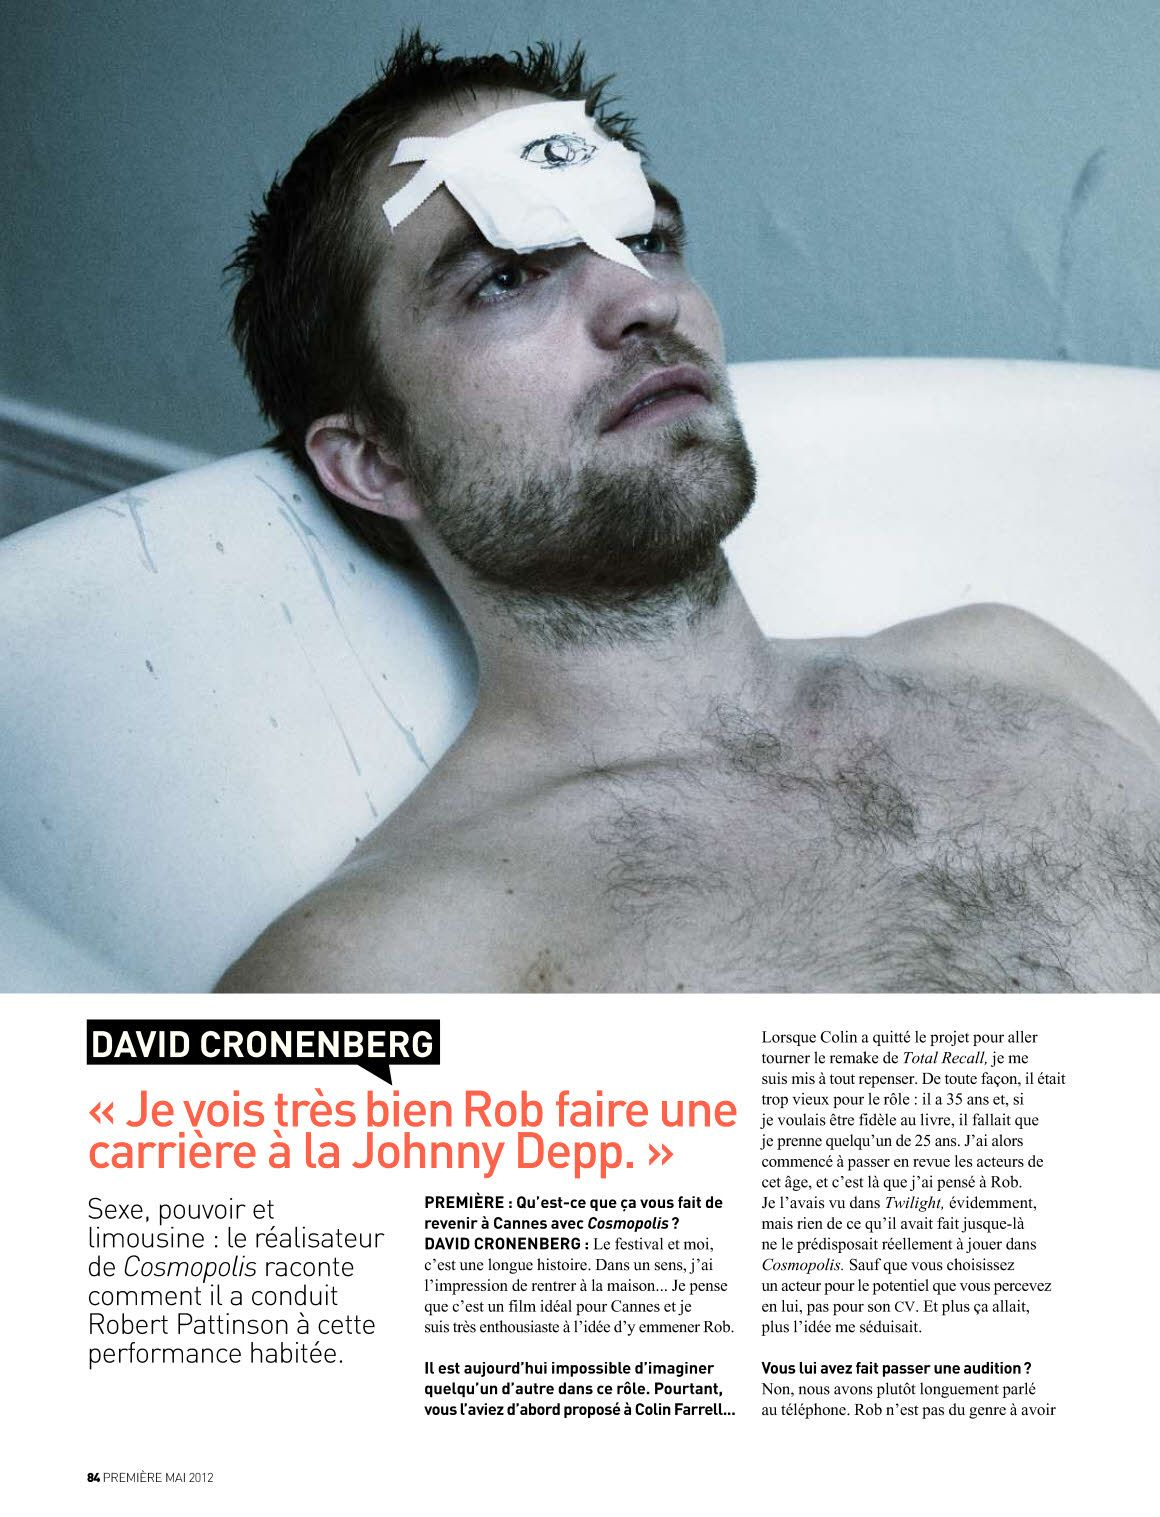 From Premiere May 2012, a photo shoot in homage of Cronenberg